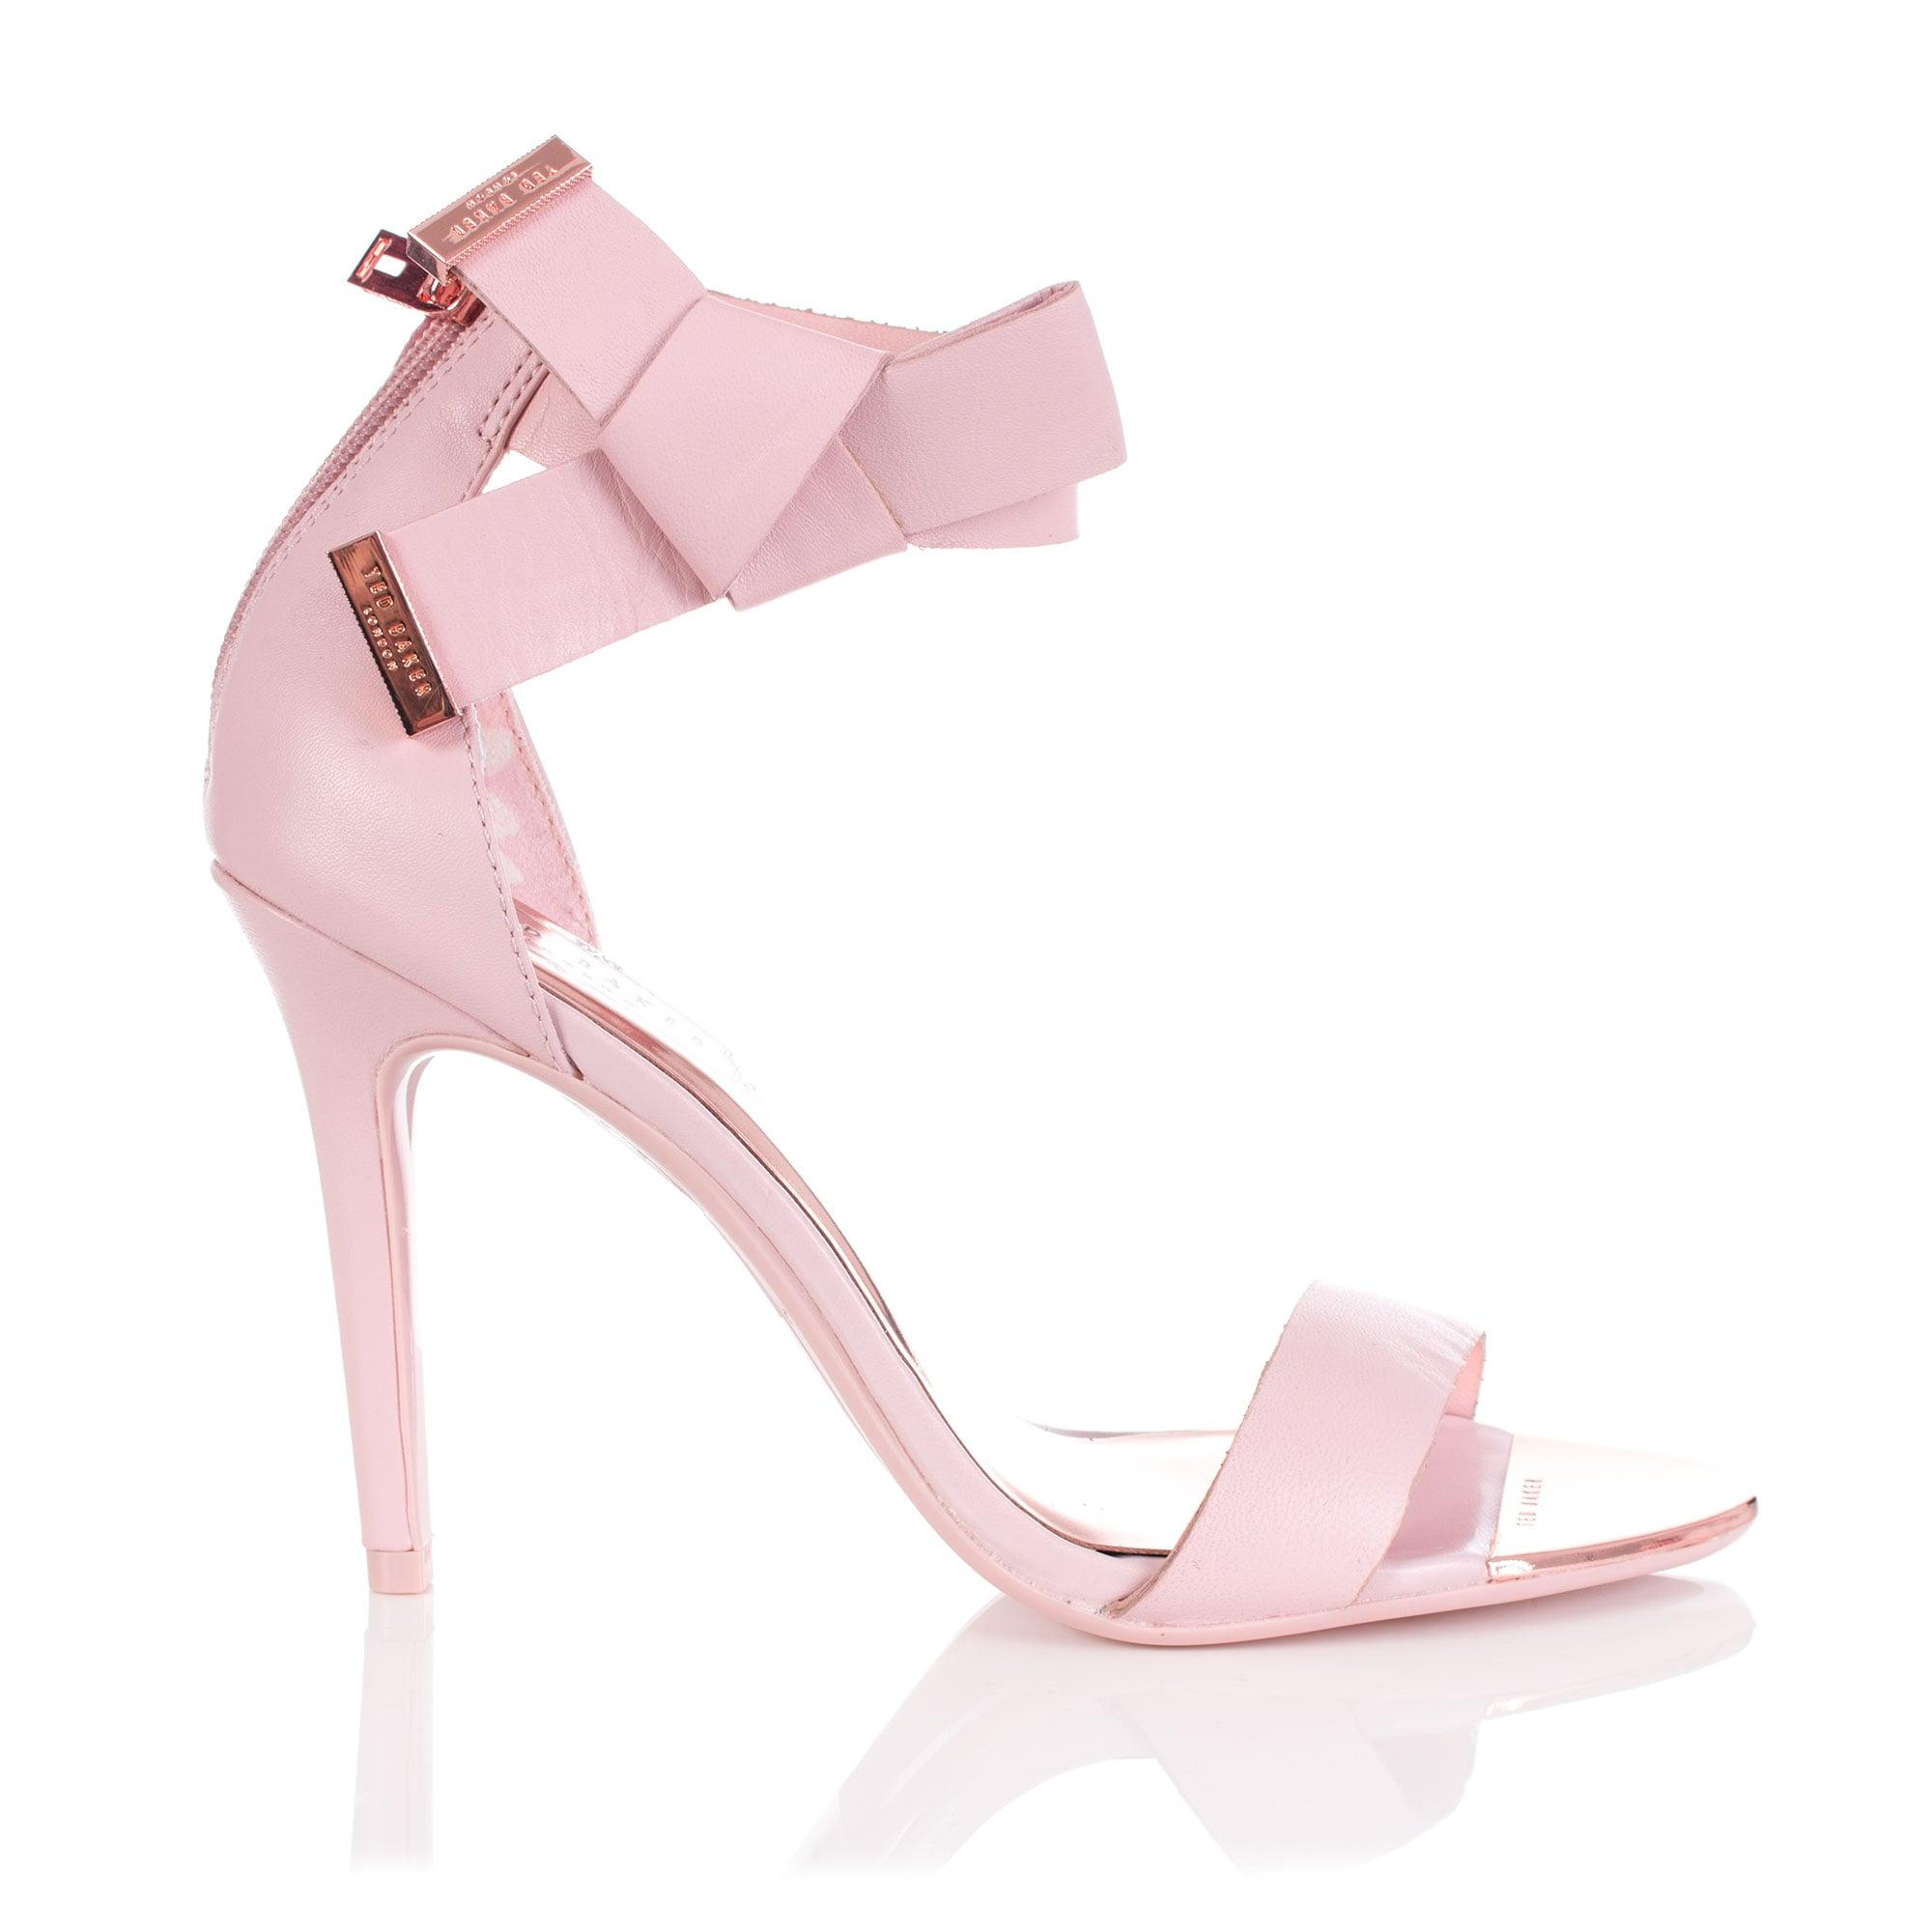 8ef70b7f880e2e Ted Baker Saphrun Knotted Bow Leather Sandal in Pink - Lyst